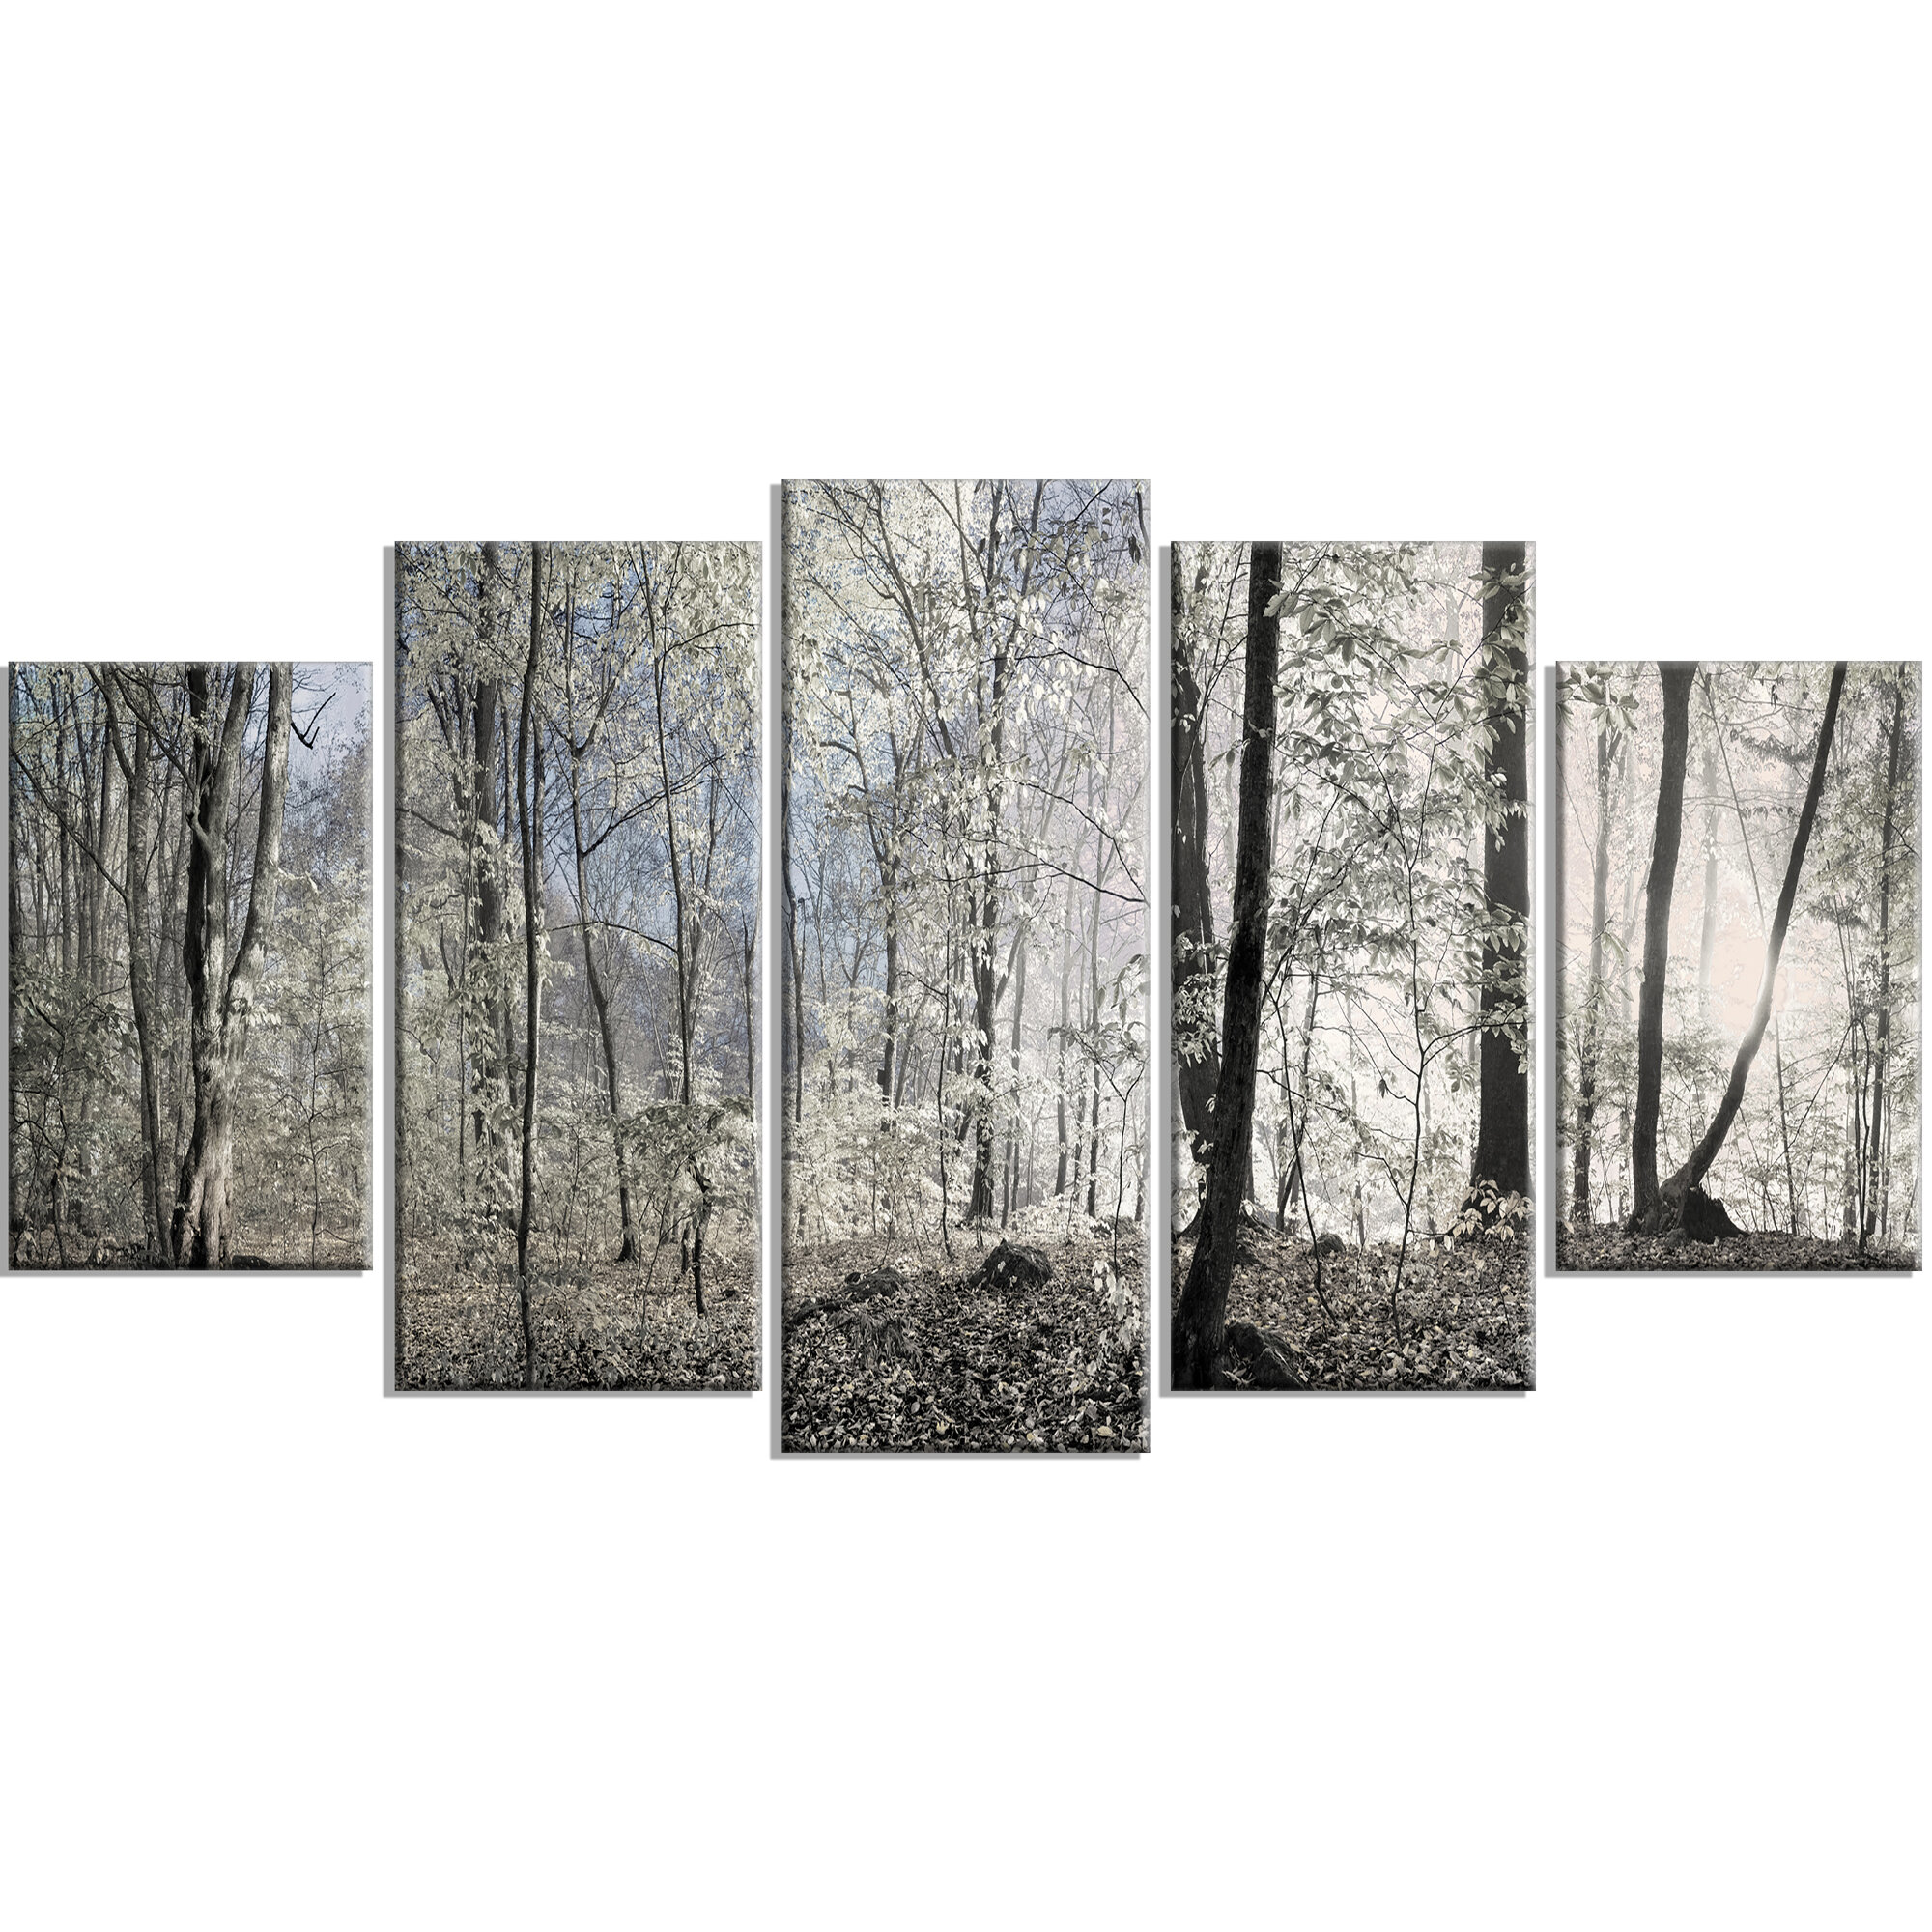 Designart Dark Morning In Forest Panorama Photographic Print Multi Piece Image On Canvas Reviews Wayfair